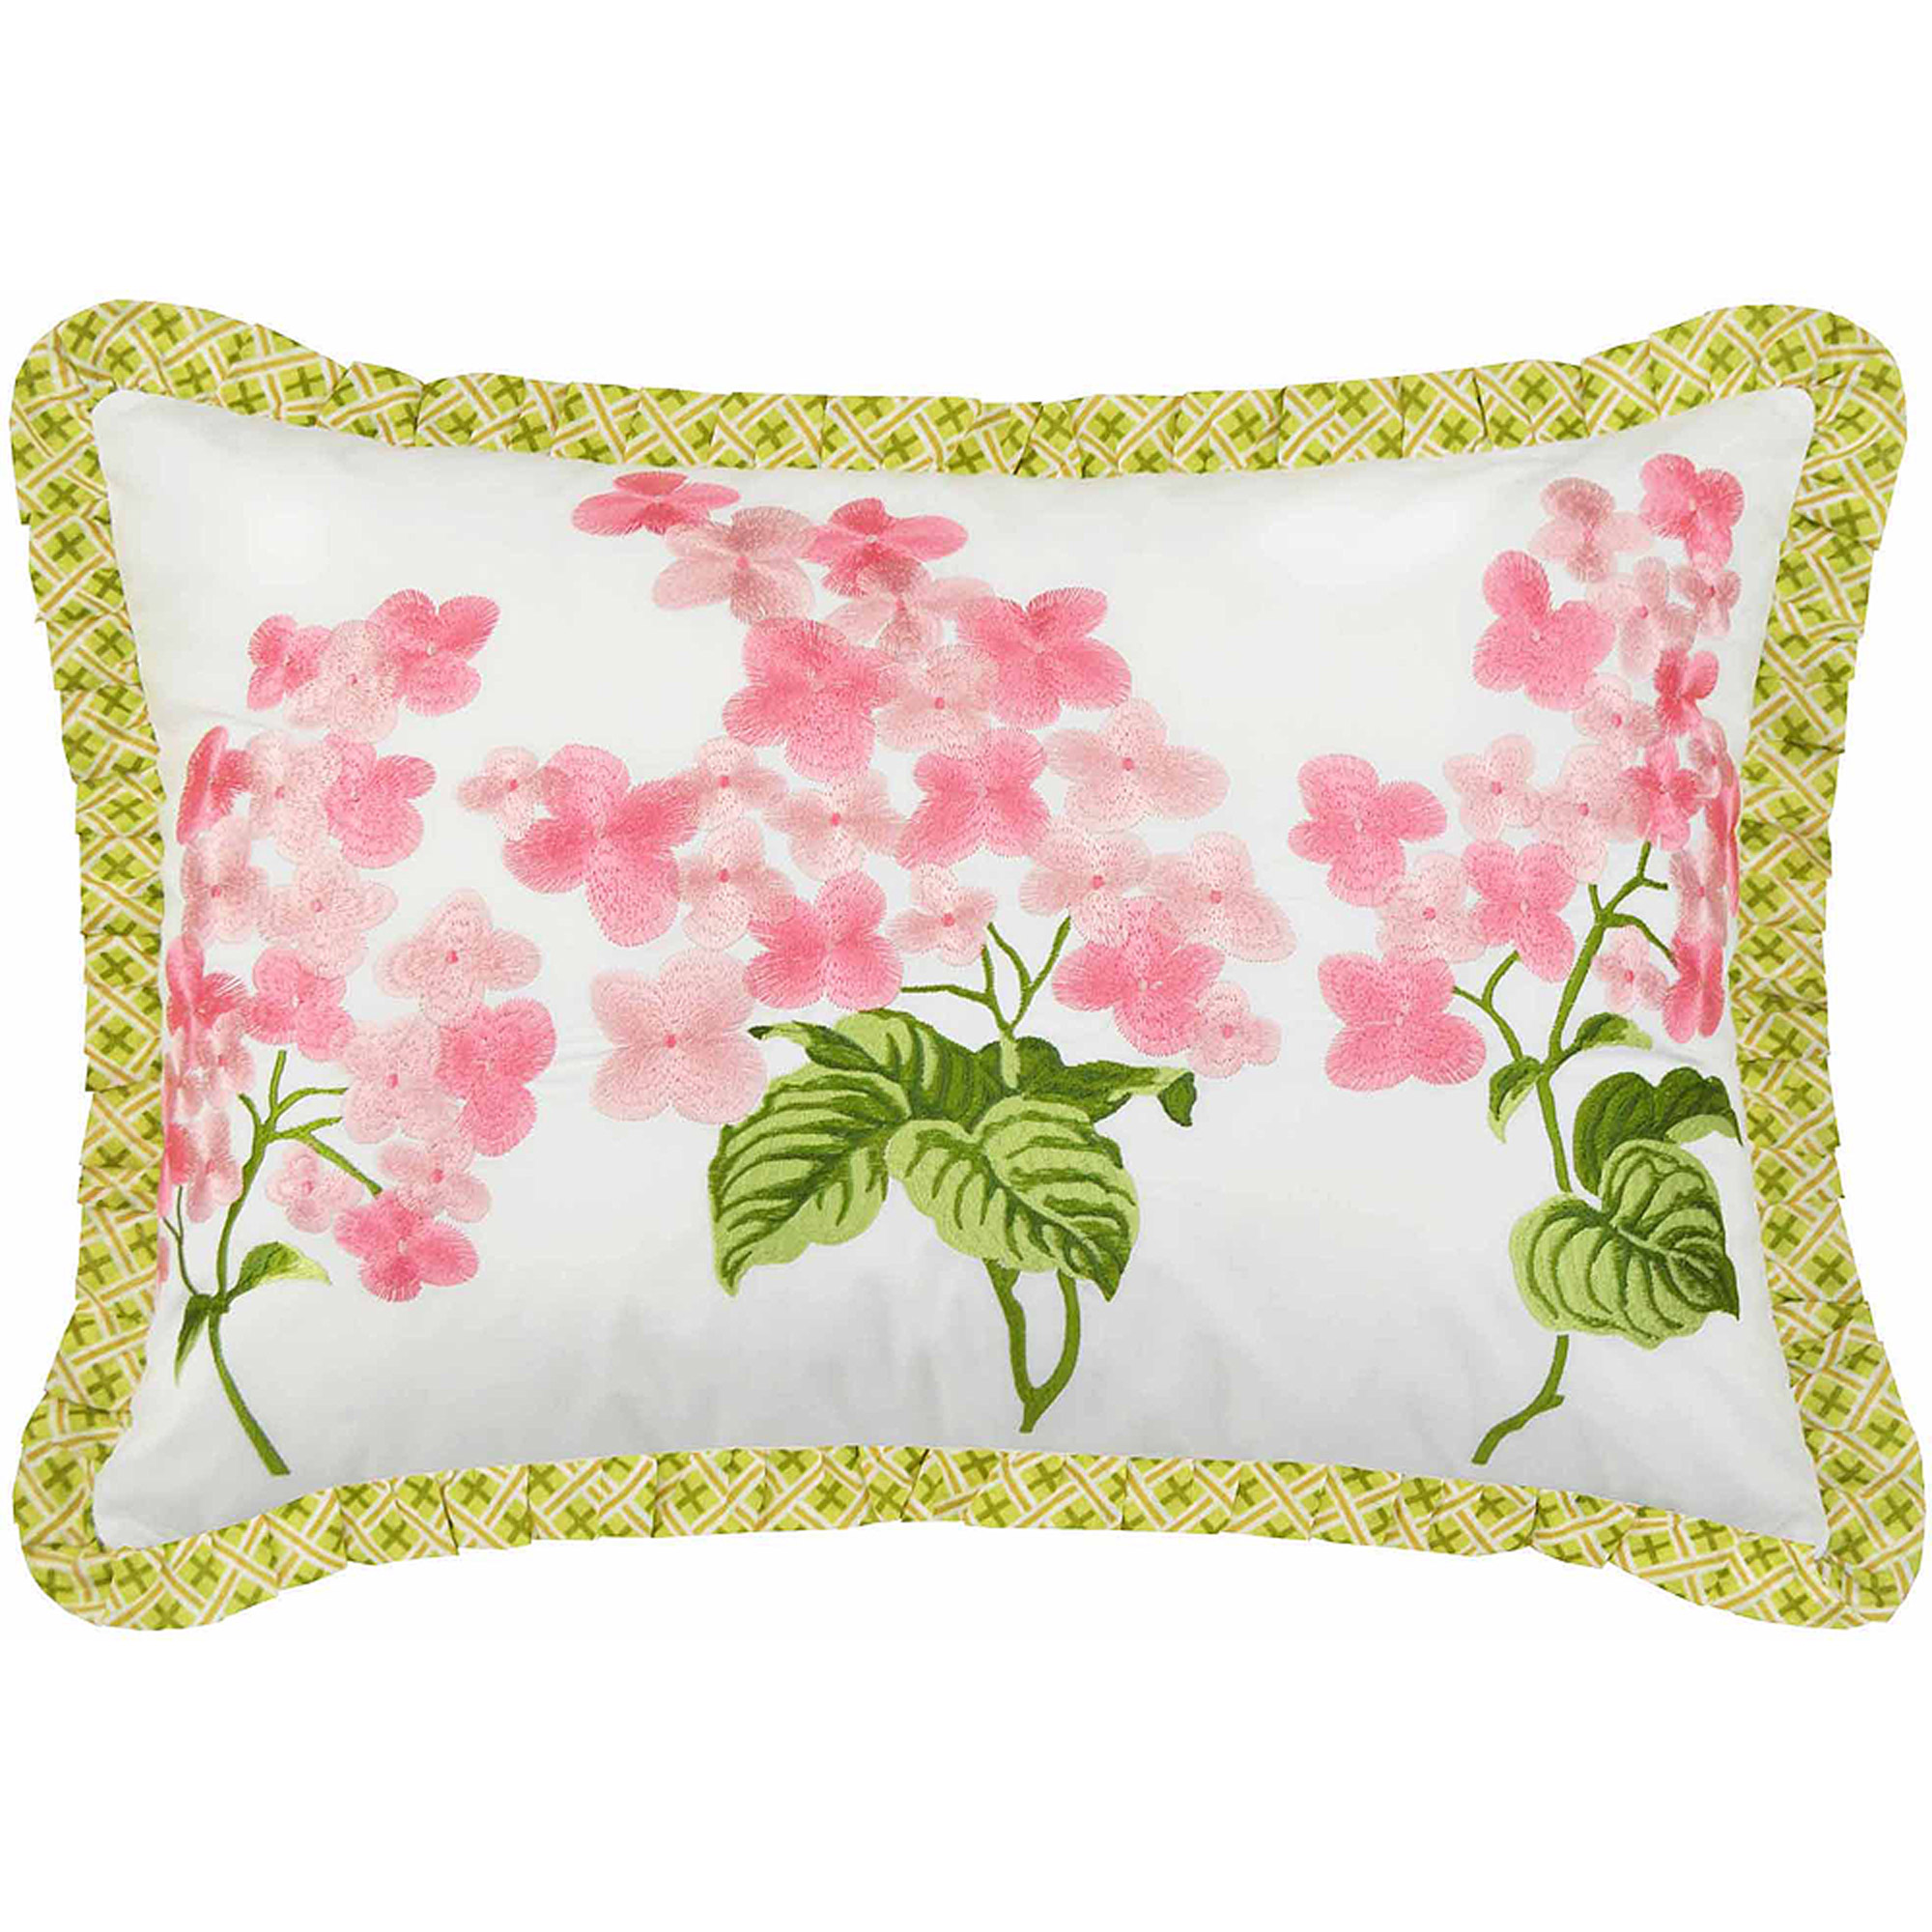 "Emma's Garden 14"" x 20"" Decorative Pillow"